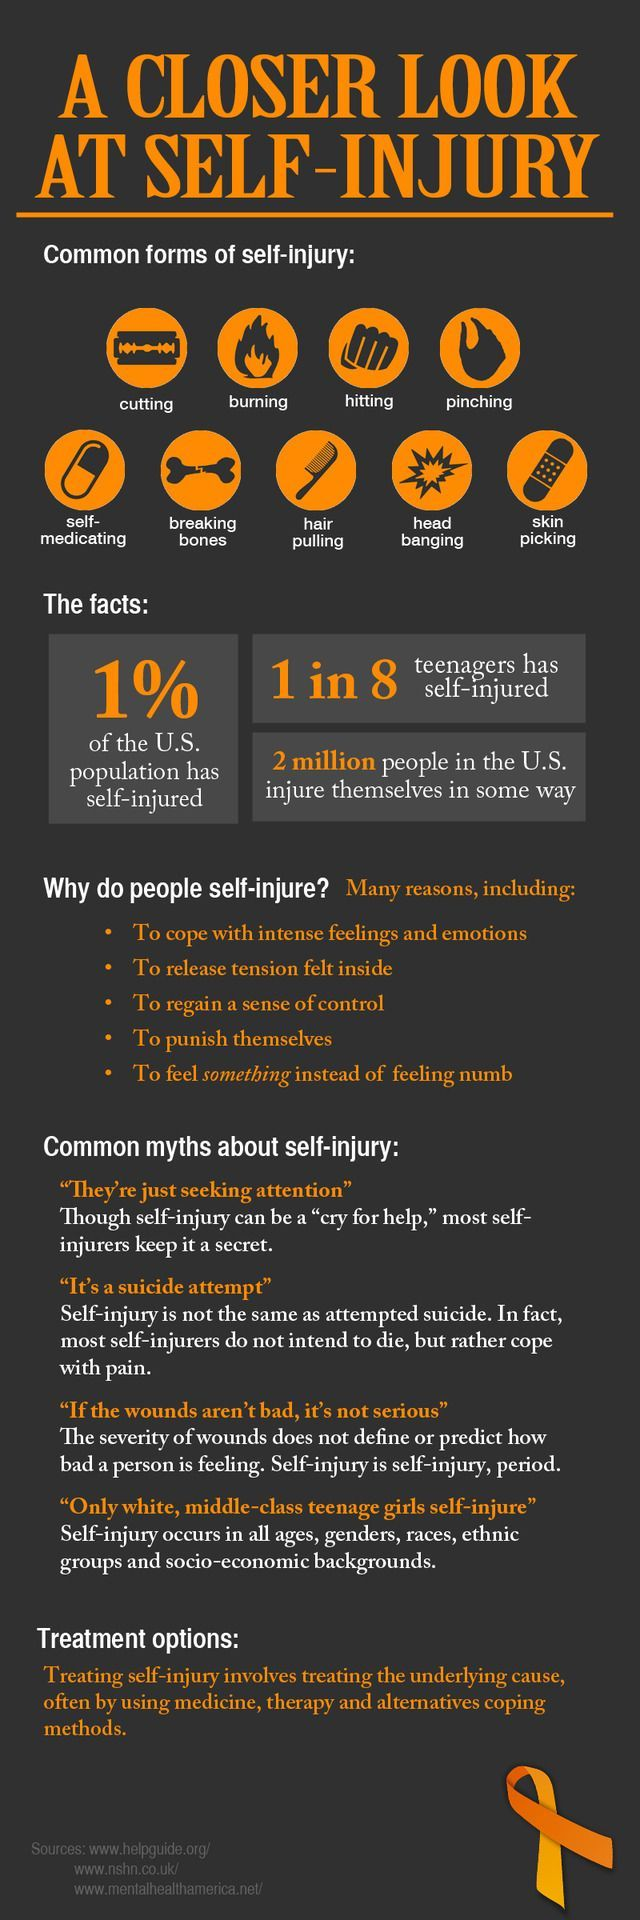 self-harm and self-injury at a glance. 51% of girls with ADHD report self-injuring behaviors. Know the signs!